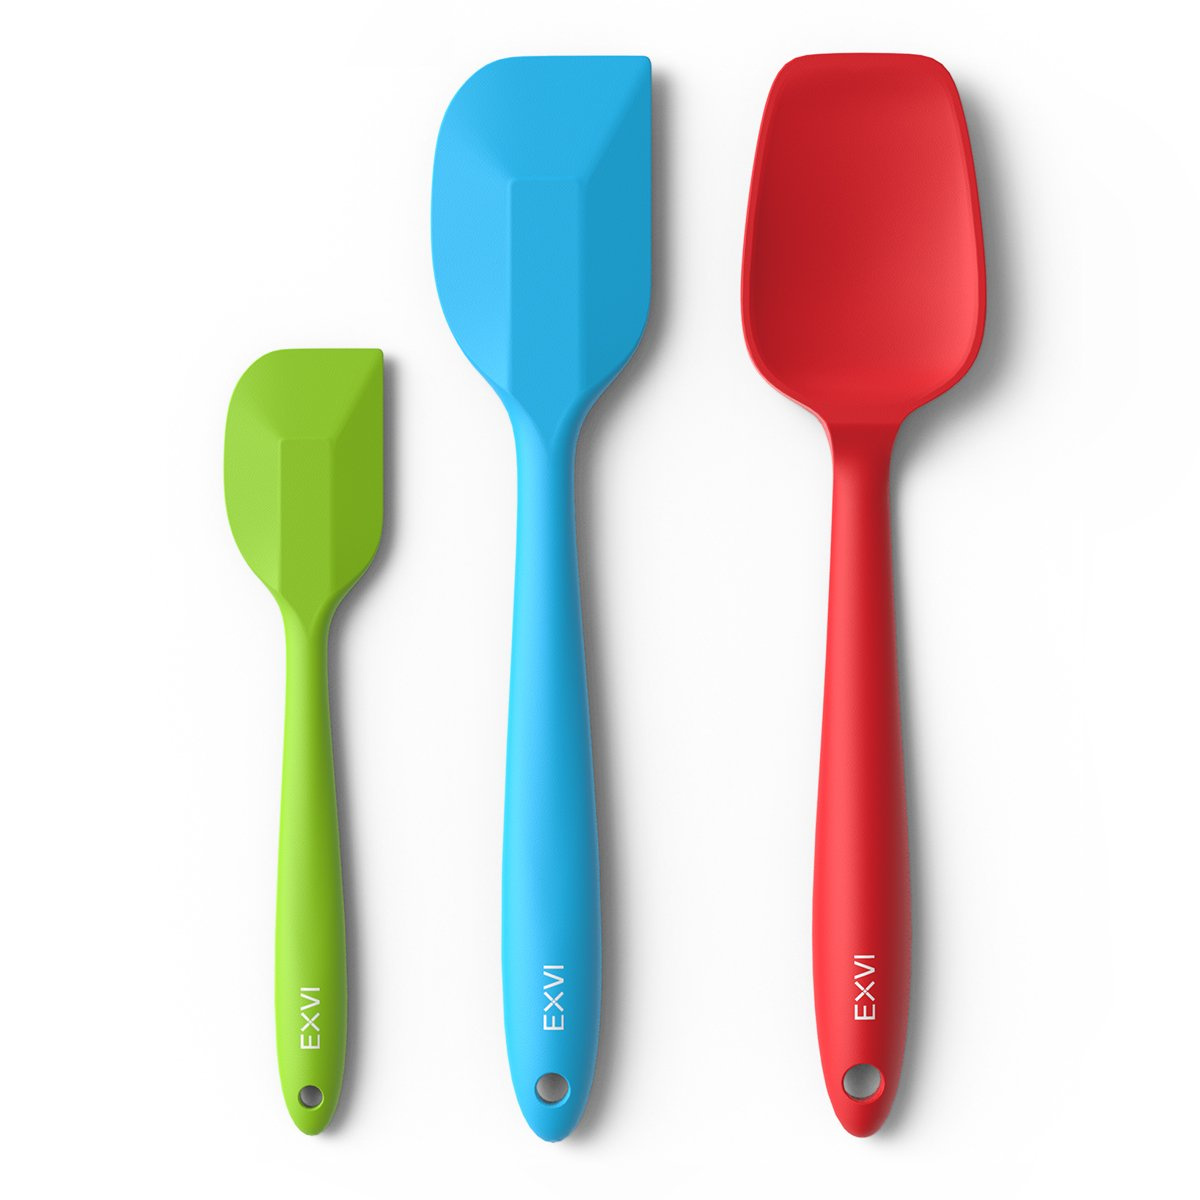 EXVI 3-Piece Flexible Silicone Spatula Sets Rubber Spatula Heat Resistant One-Piece Seamless Bowl Scraper Baking Utensils (Green)